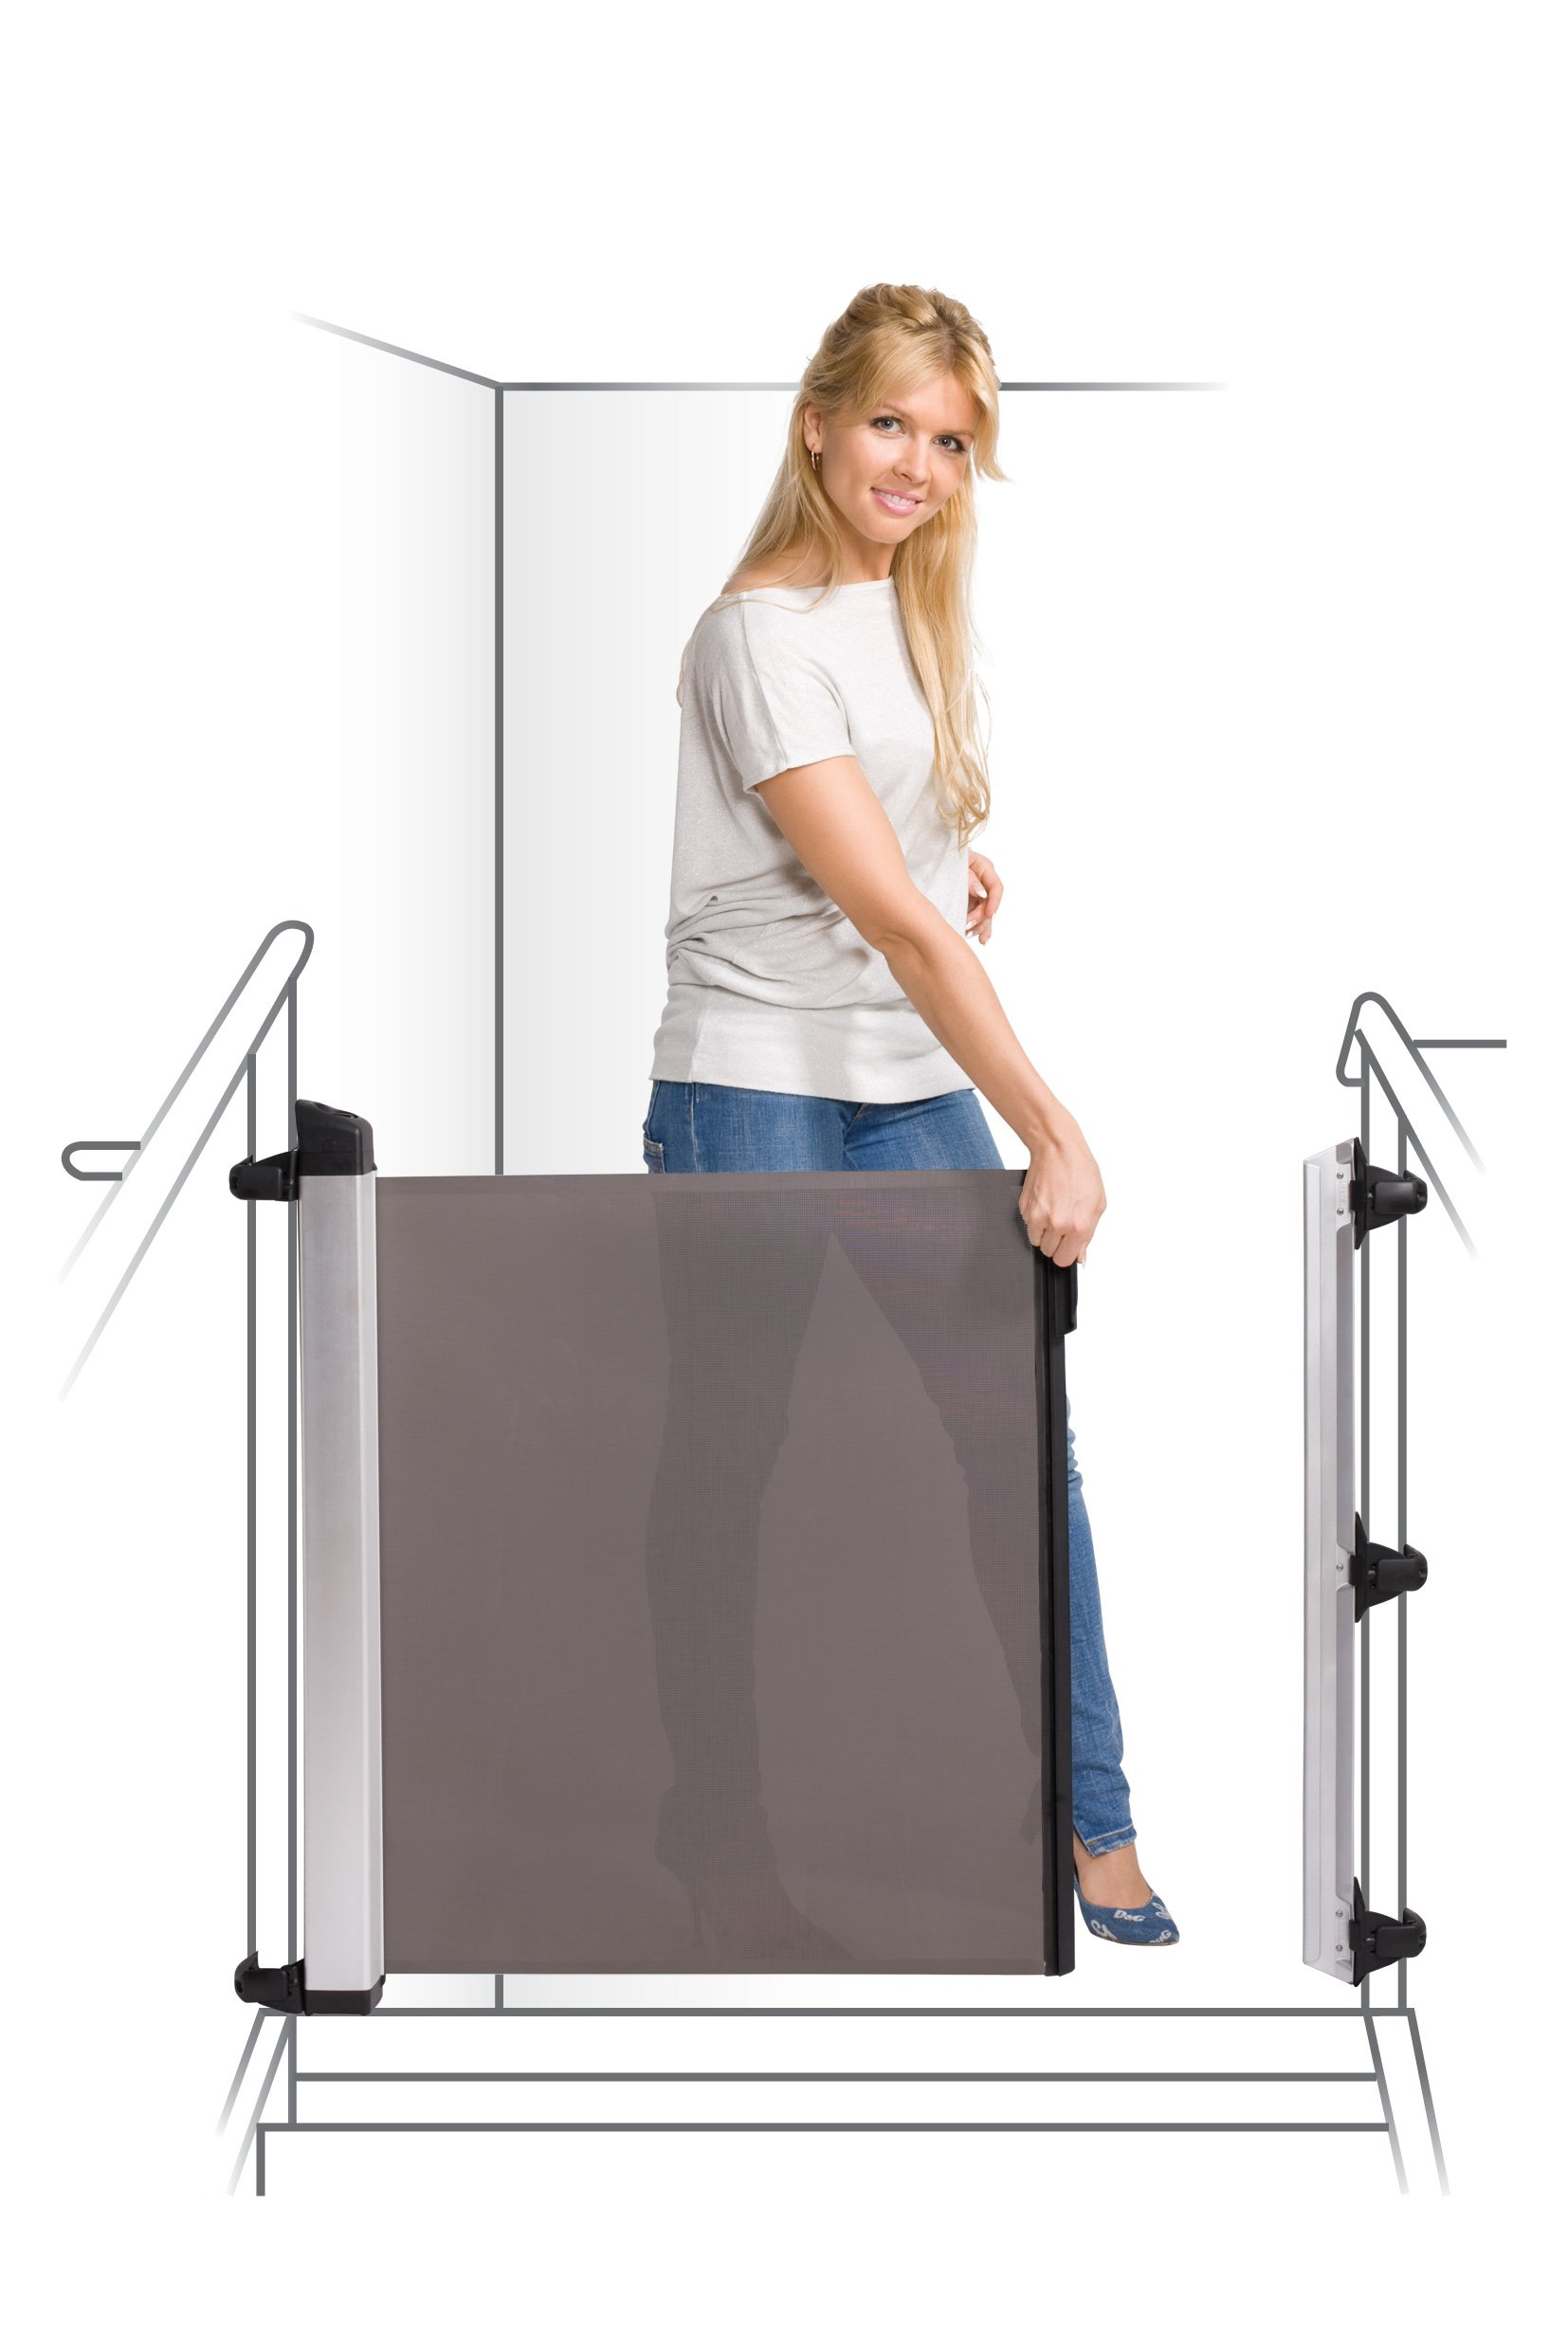 Lascal KiddyGuard Avant Baby Safety Gate Black Lascal Safety Gate discètes on easy to use one handed The curtain can extends to protect any space up to 120cm wide and 80cm height Designed to withstand an impact of 100kg 6